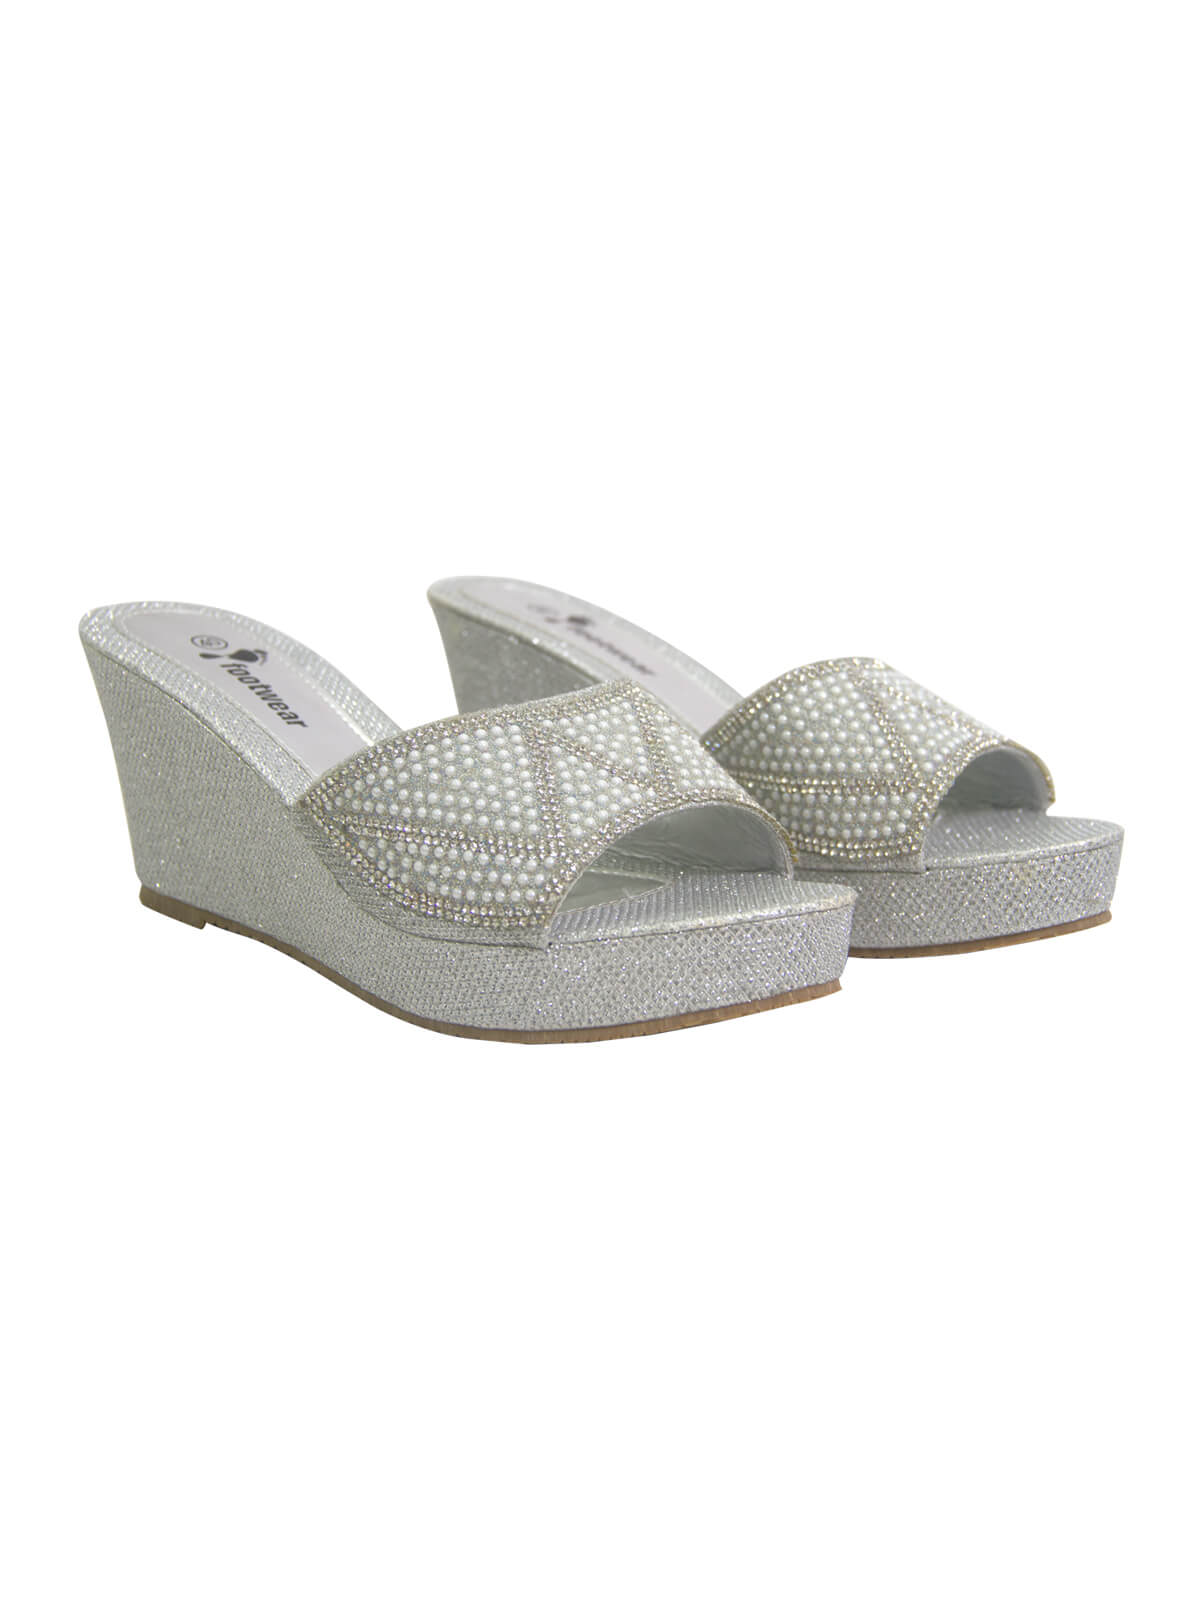 Mountain Mist Grey Flat High Heel Ladies Sandal